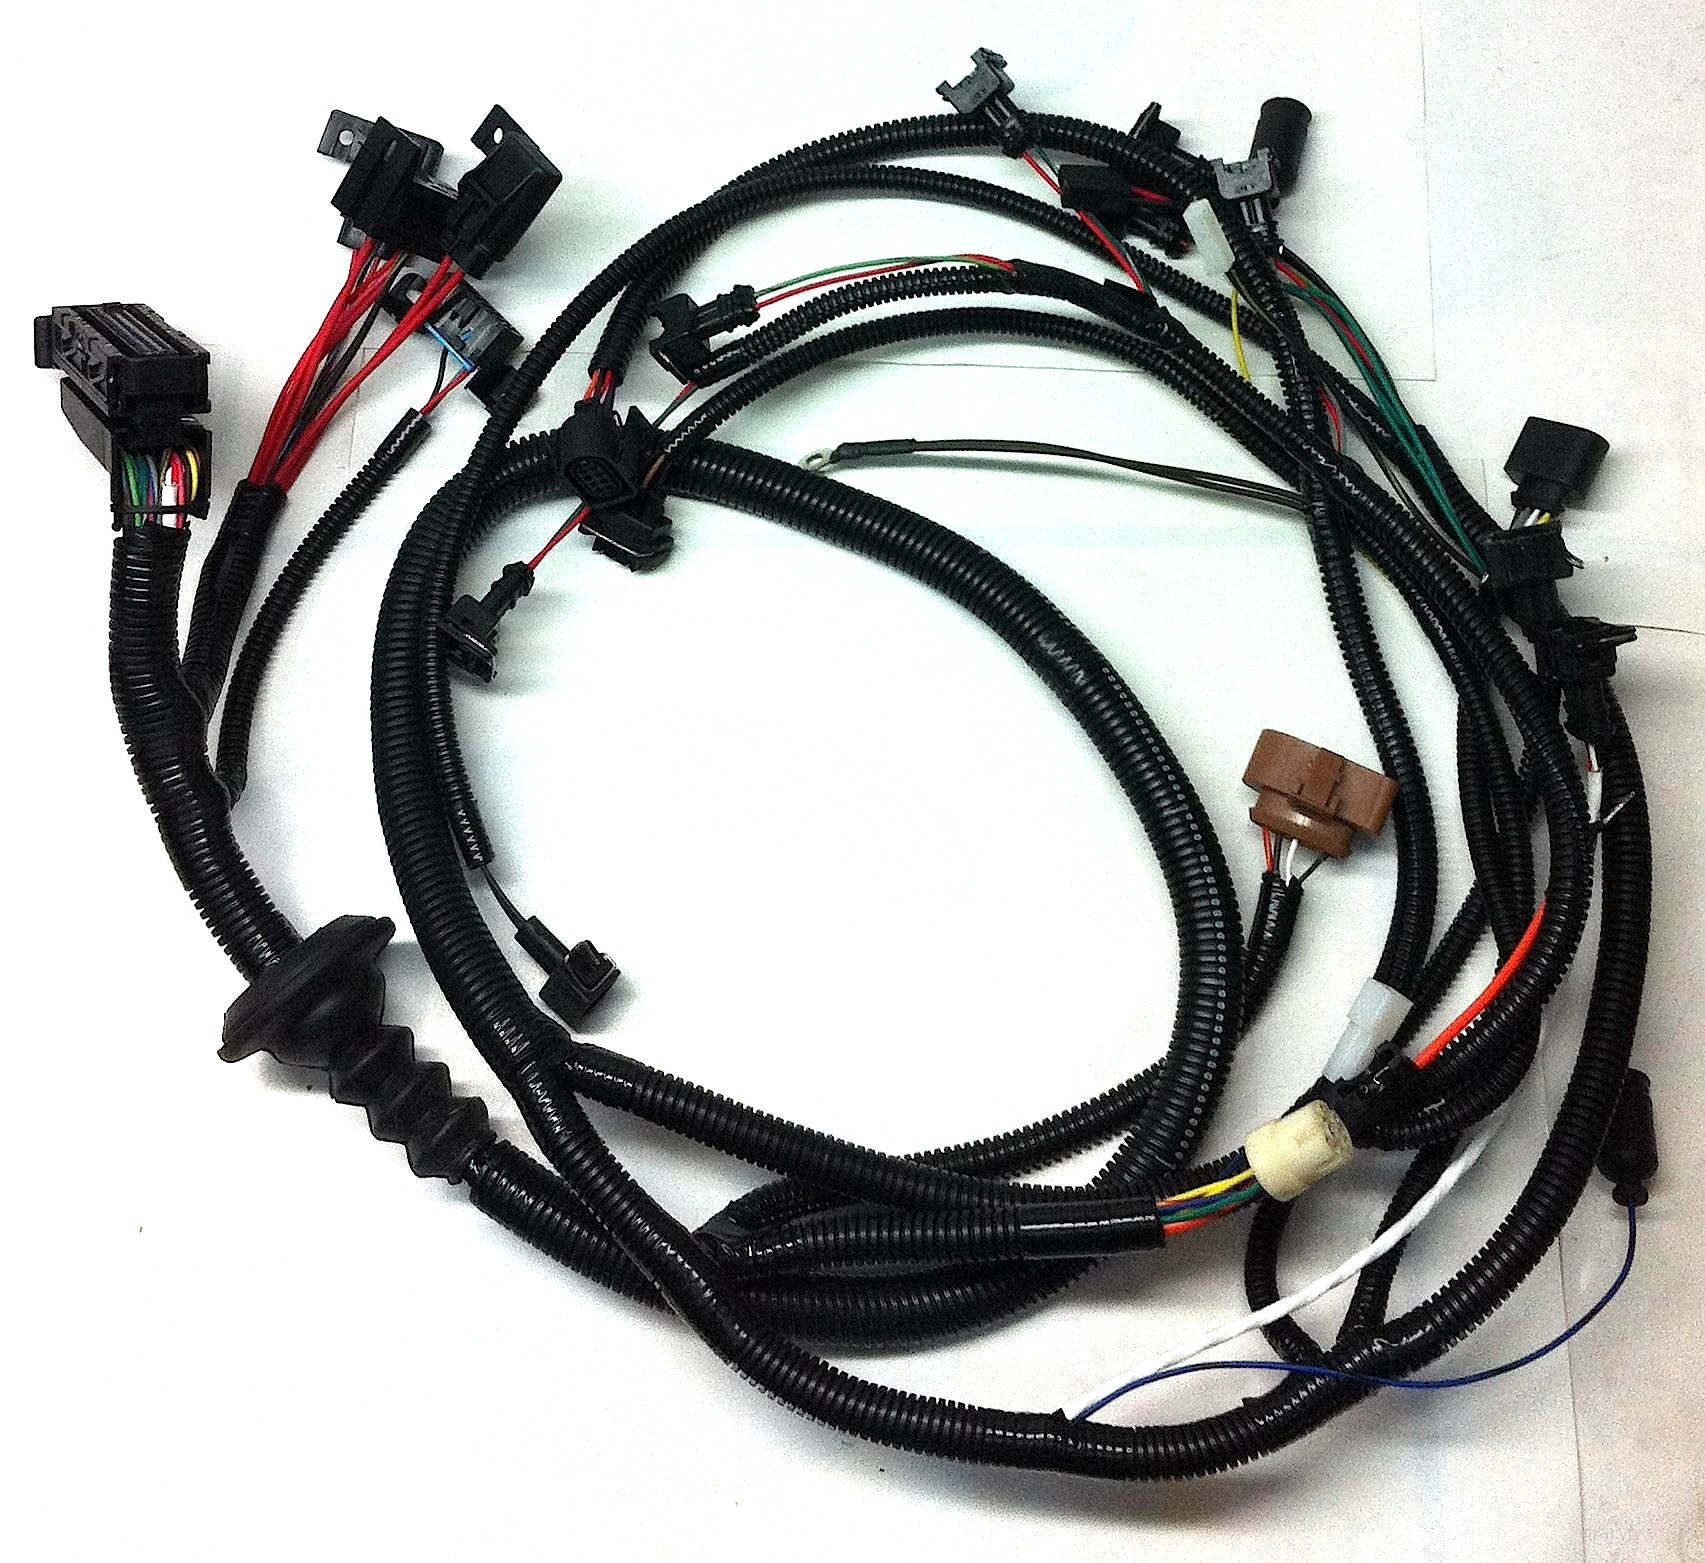 Wiring_Harness_2LR 2lr tiico conversion wiring harness foreign auto & supply, inc aftermarket engine wiring harness at suagrazia.org